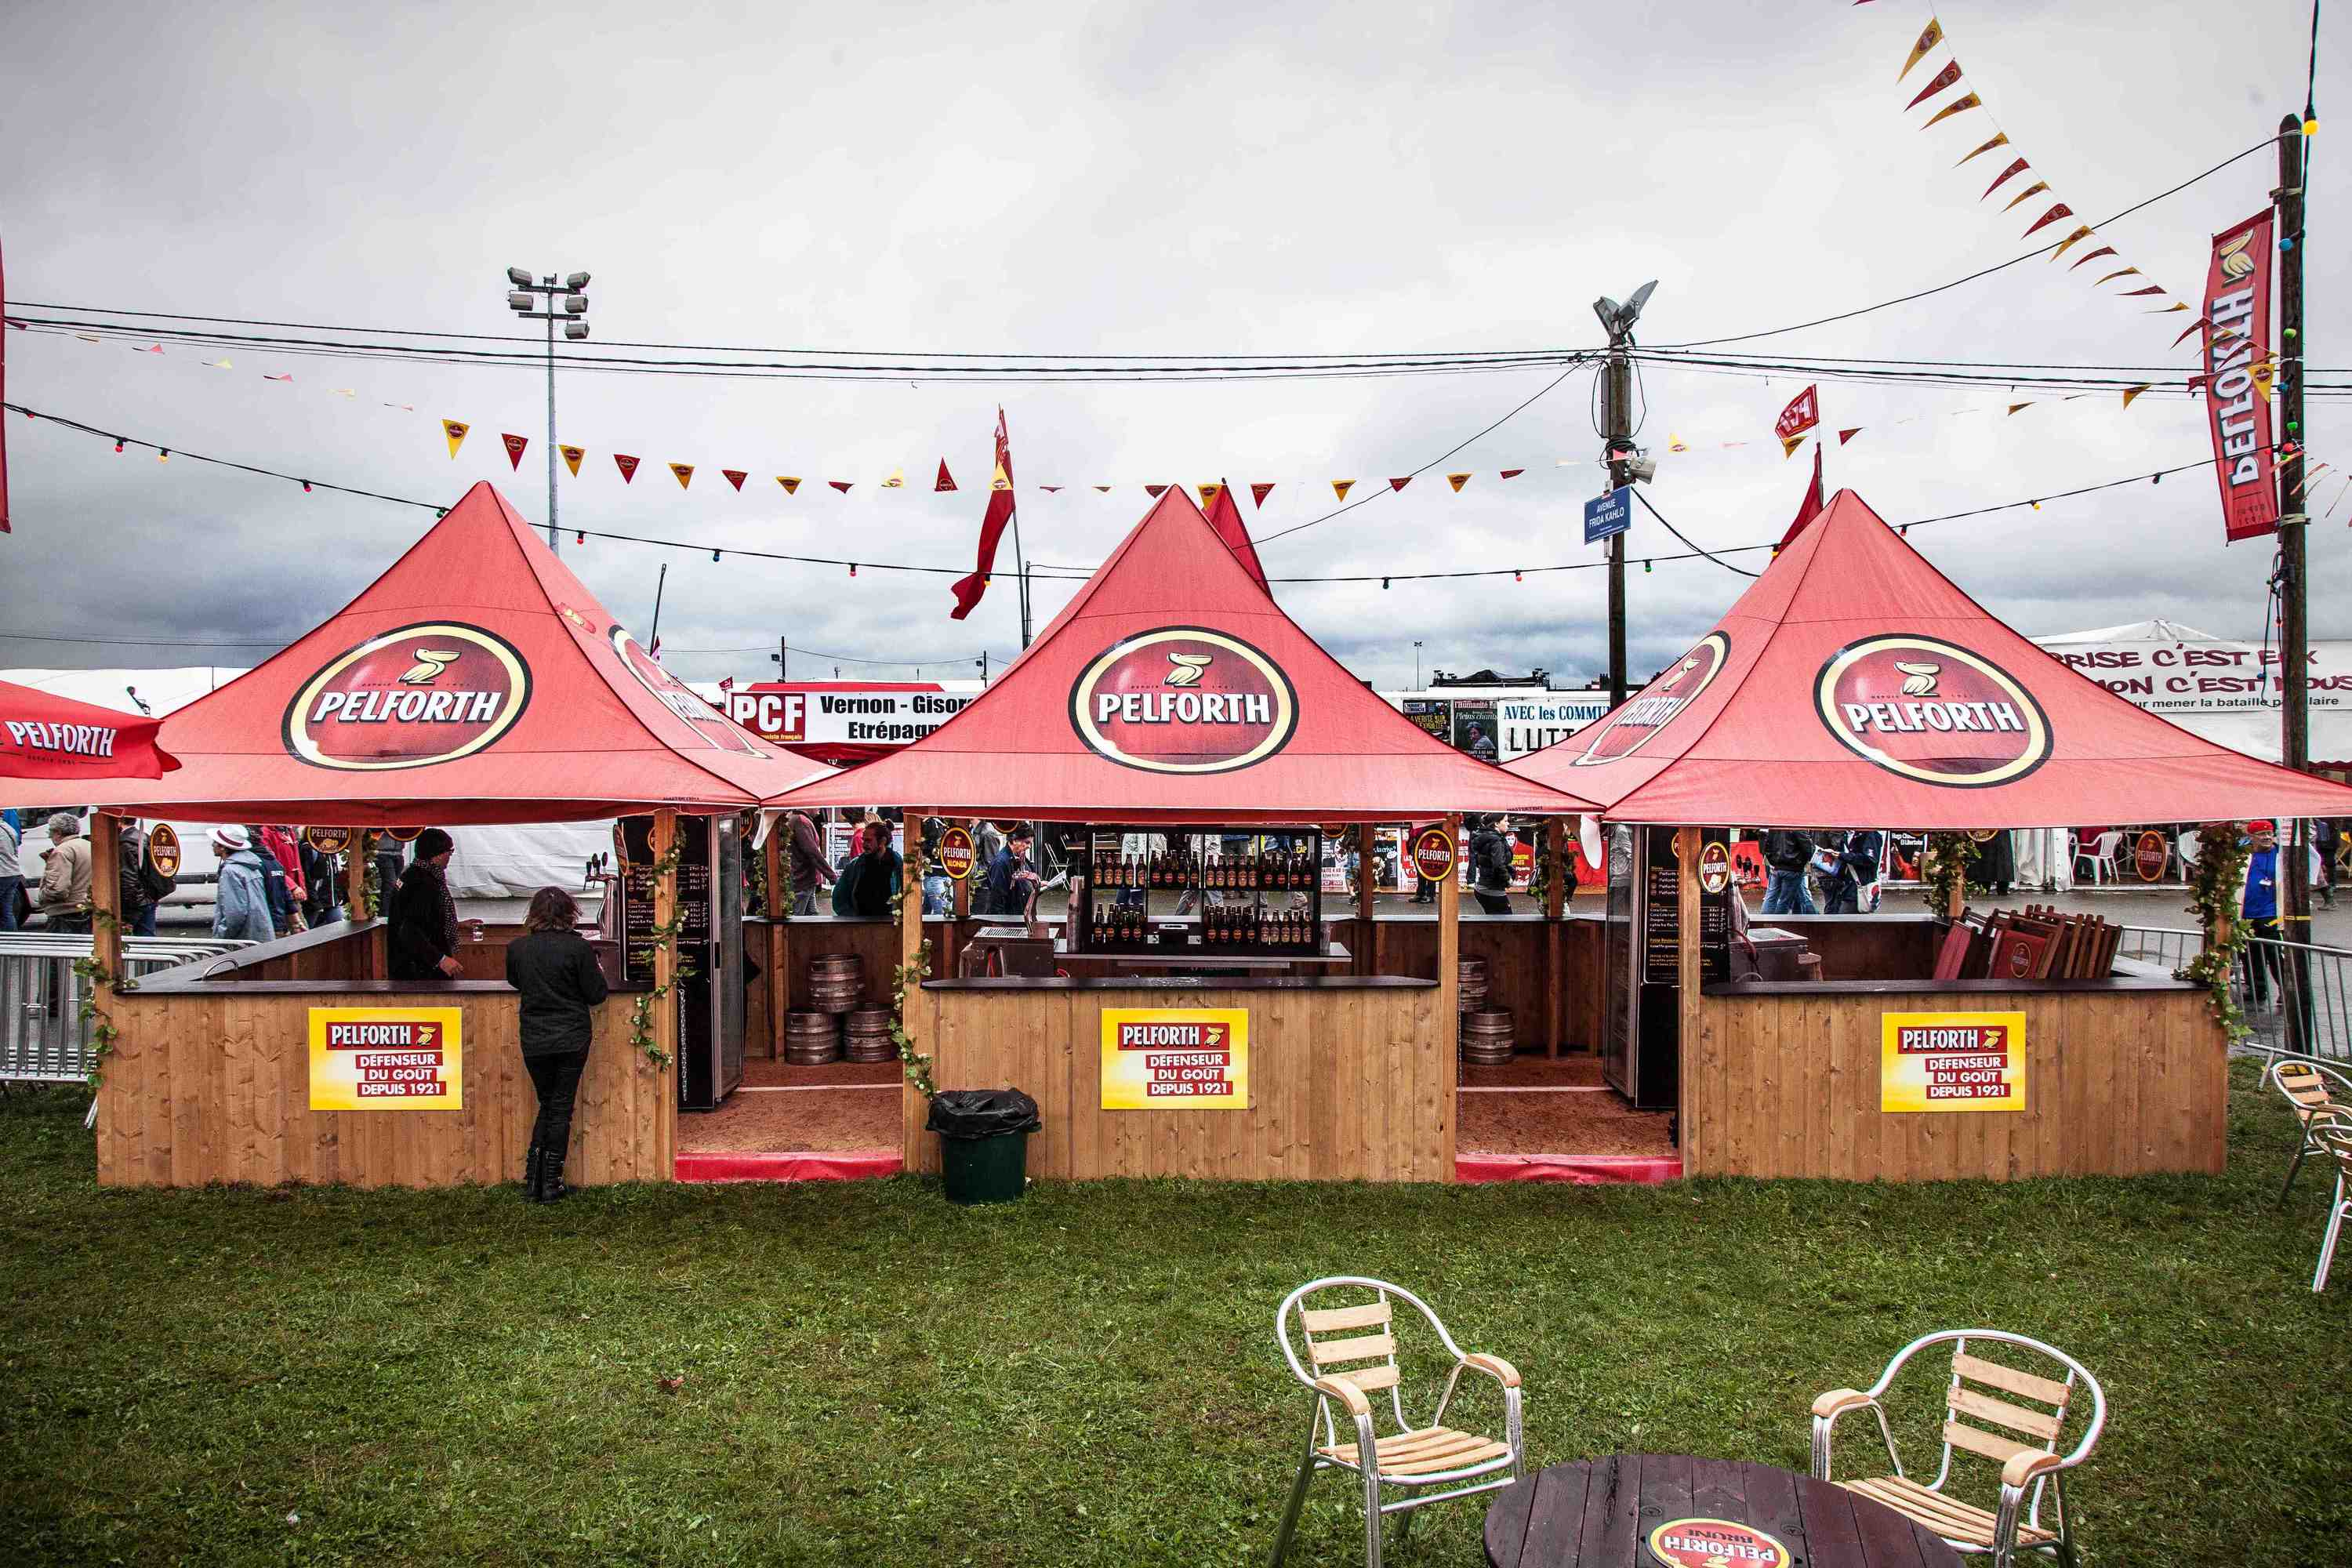 <p>Tent – Shop – Pelforth Bar</p> <p>3m x 3m Shop 4 Awnings (4.3m x 4.3m)</p> <p>Brilliant event bar produced for Pelforth Beer. Tents joined together with raingutters and counter system.</p>